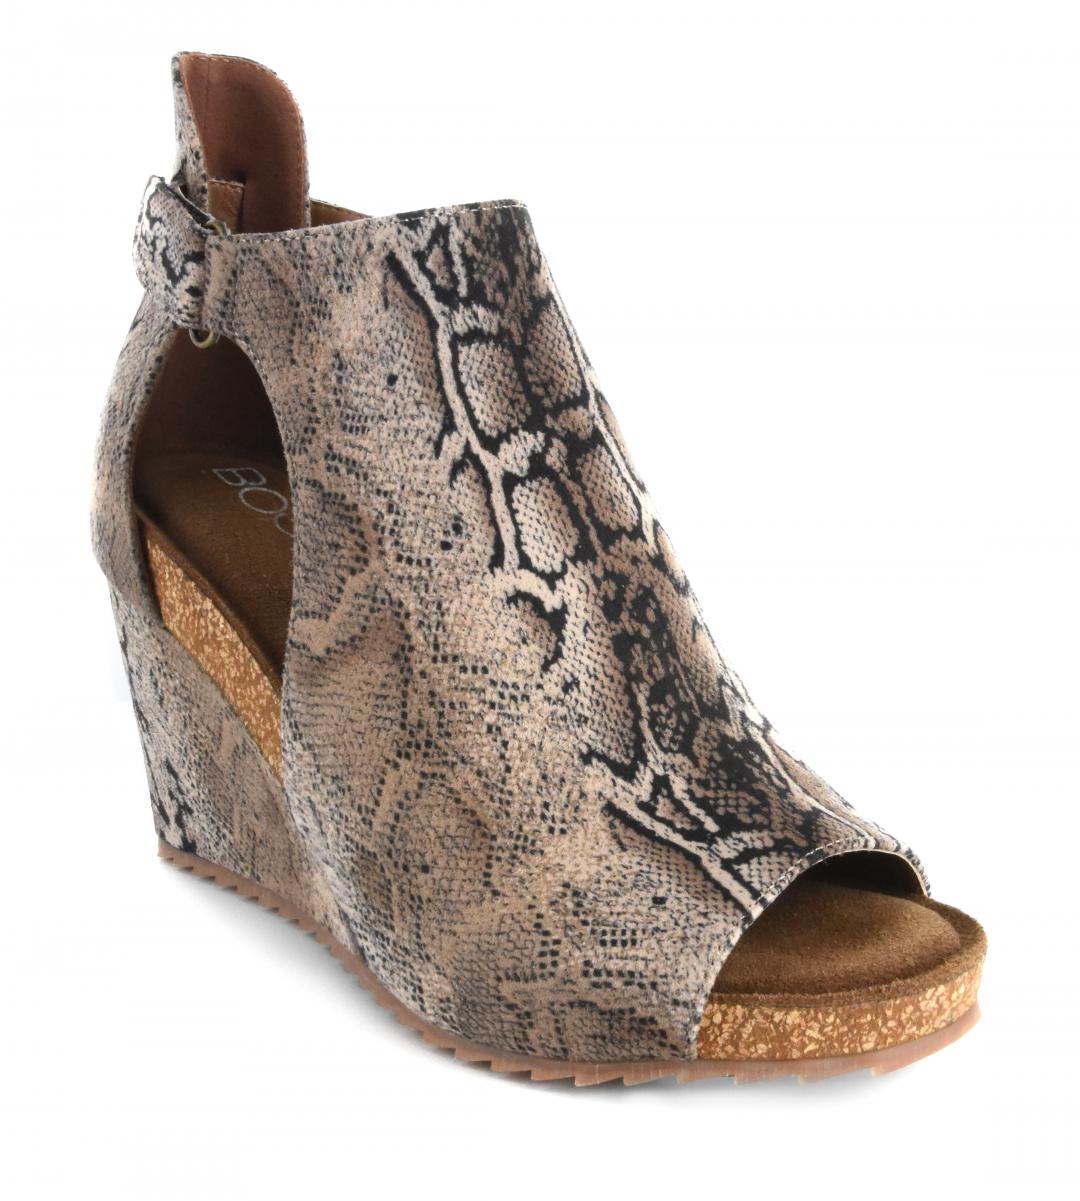 Corkys Shoes - Sunburst Brown Snake Wedge